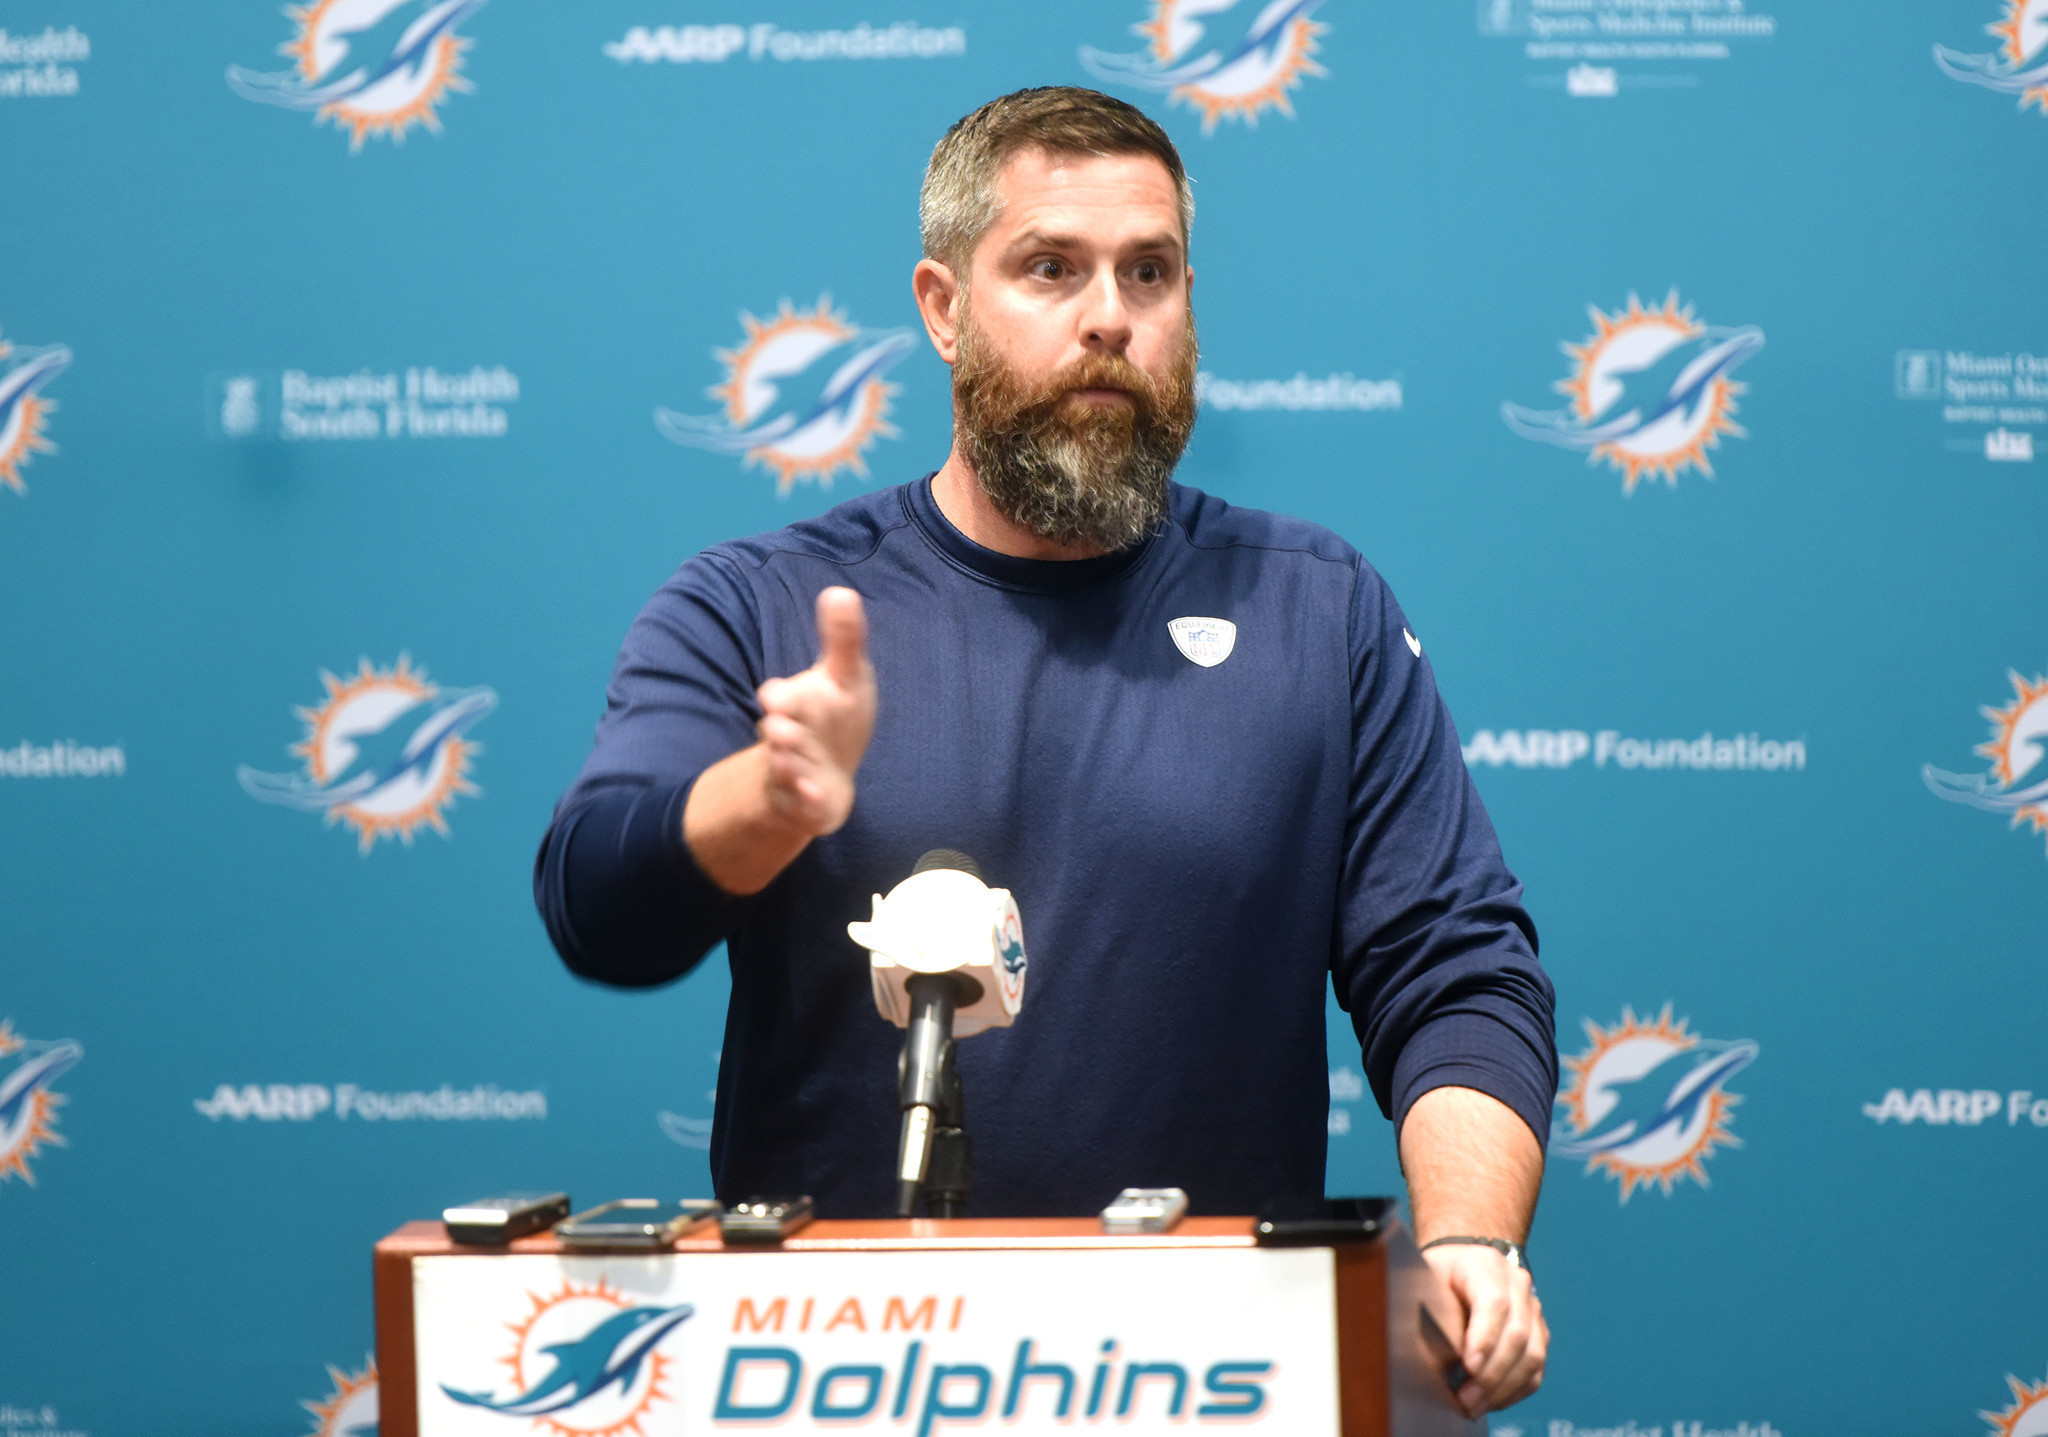 Fl-sp-dolphins-notes-20171005